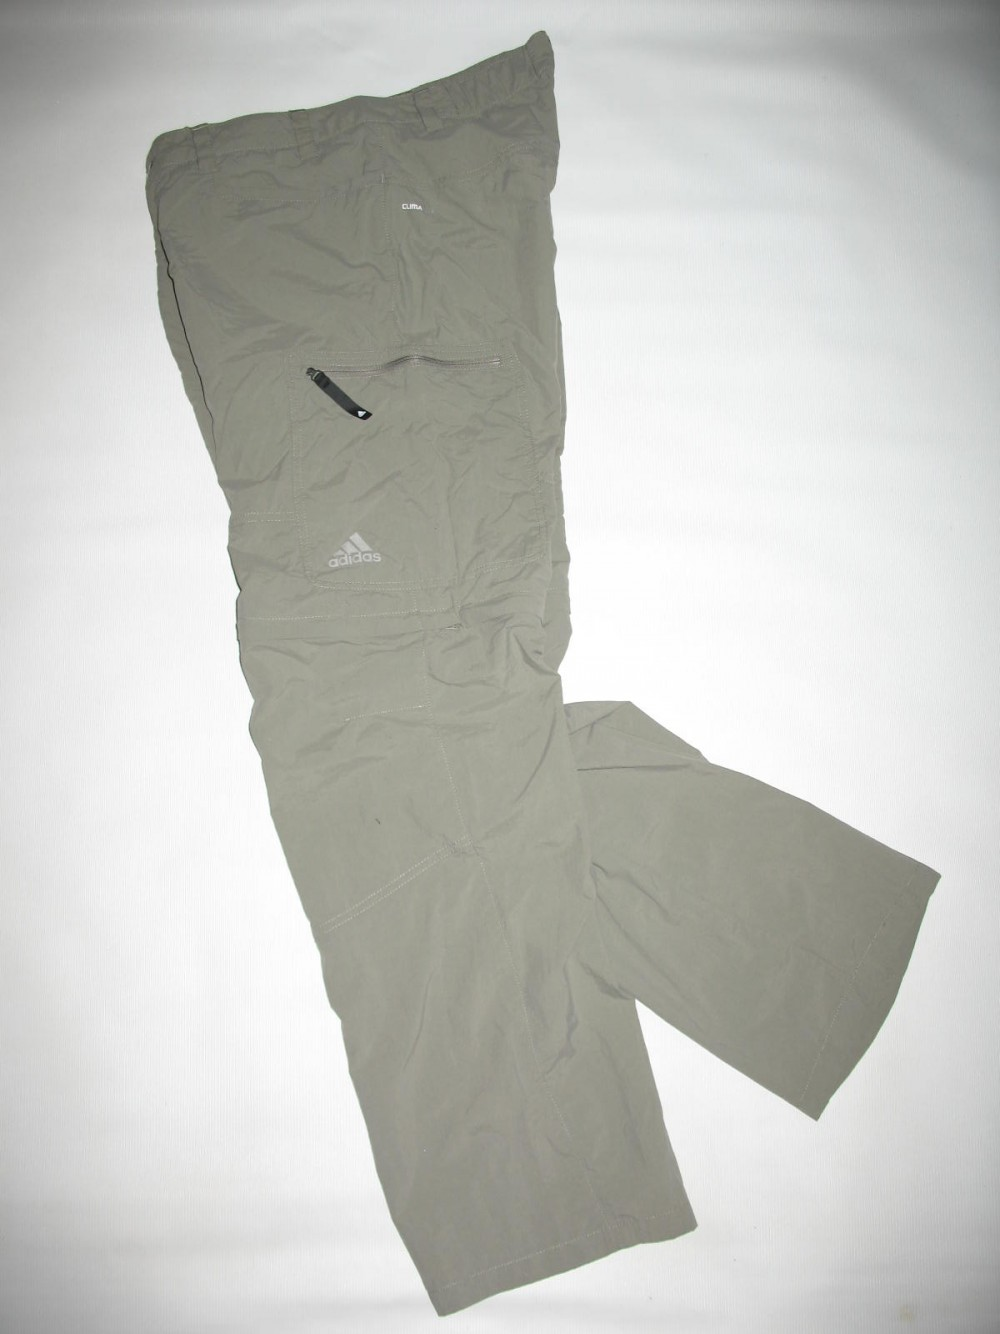 Штаны ADIDAS ht hike 2in1 outdoor pants (размер 50/L) - 11